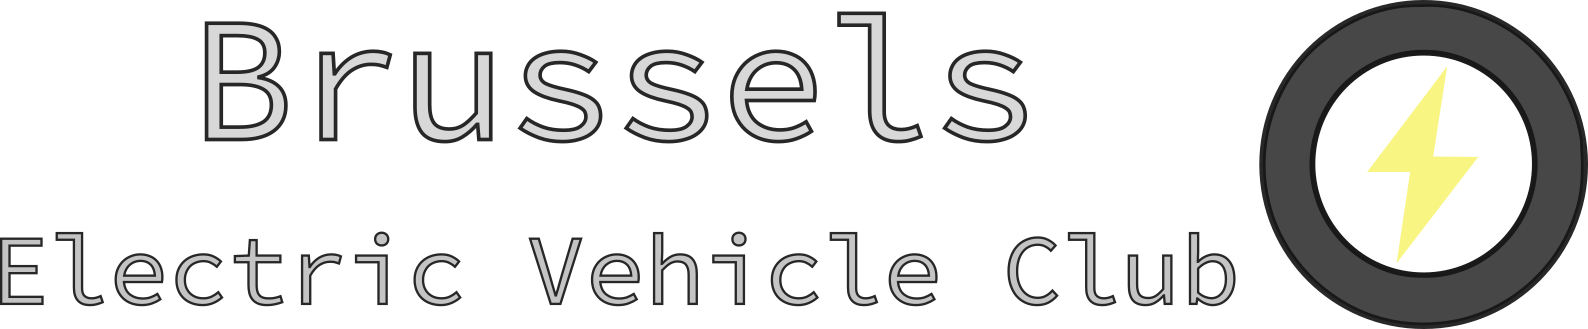 Brussels Electric Vehicle Club